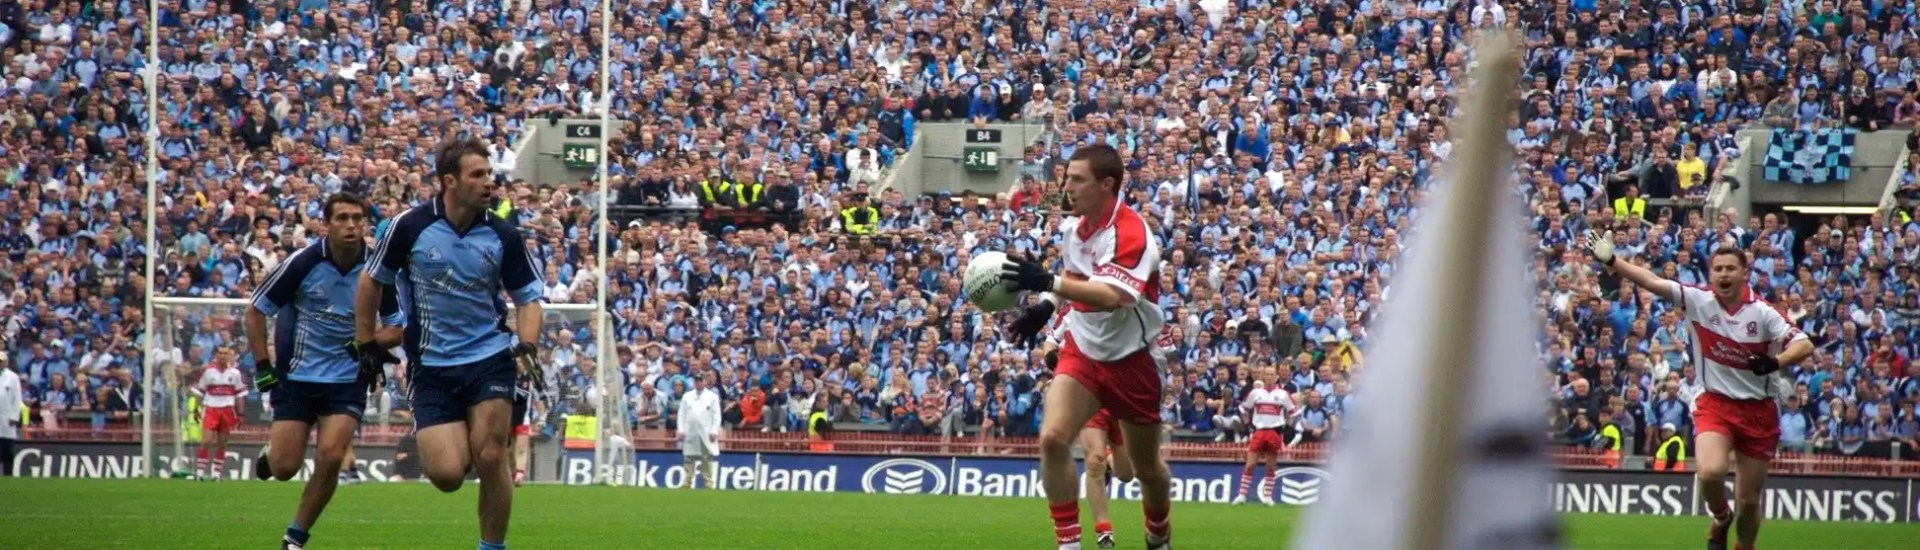 Dublin play Derry in Croke Park